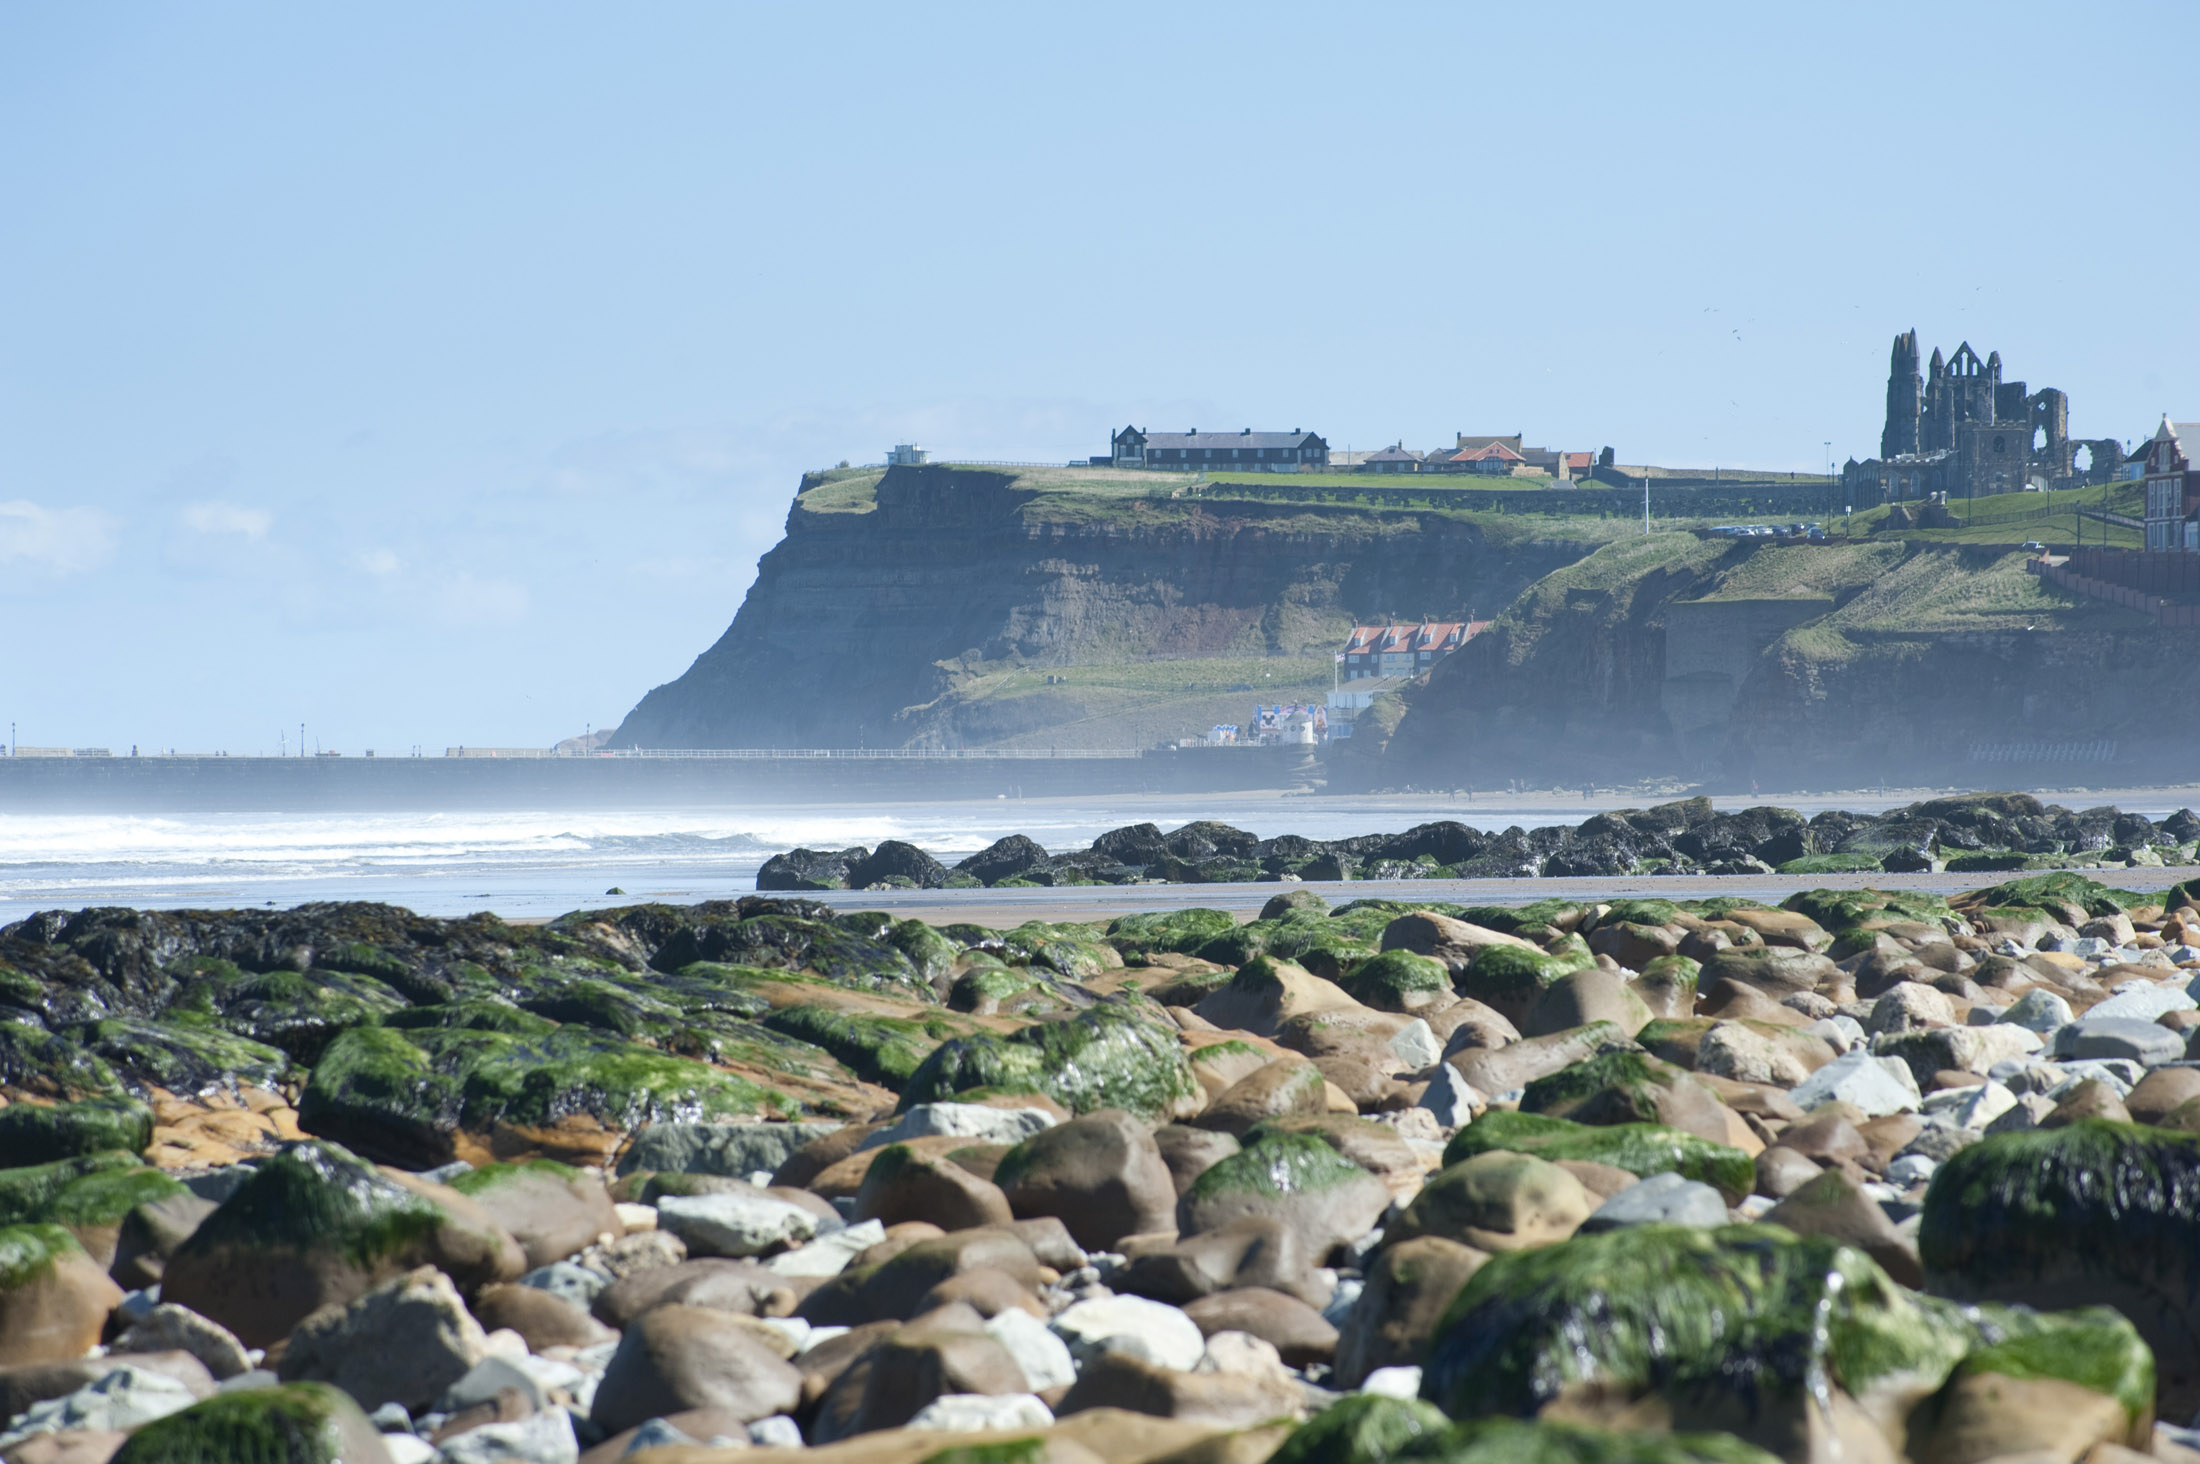 headland to the east of whitby with the landmark abbey ruins on top